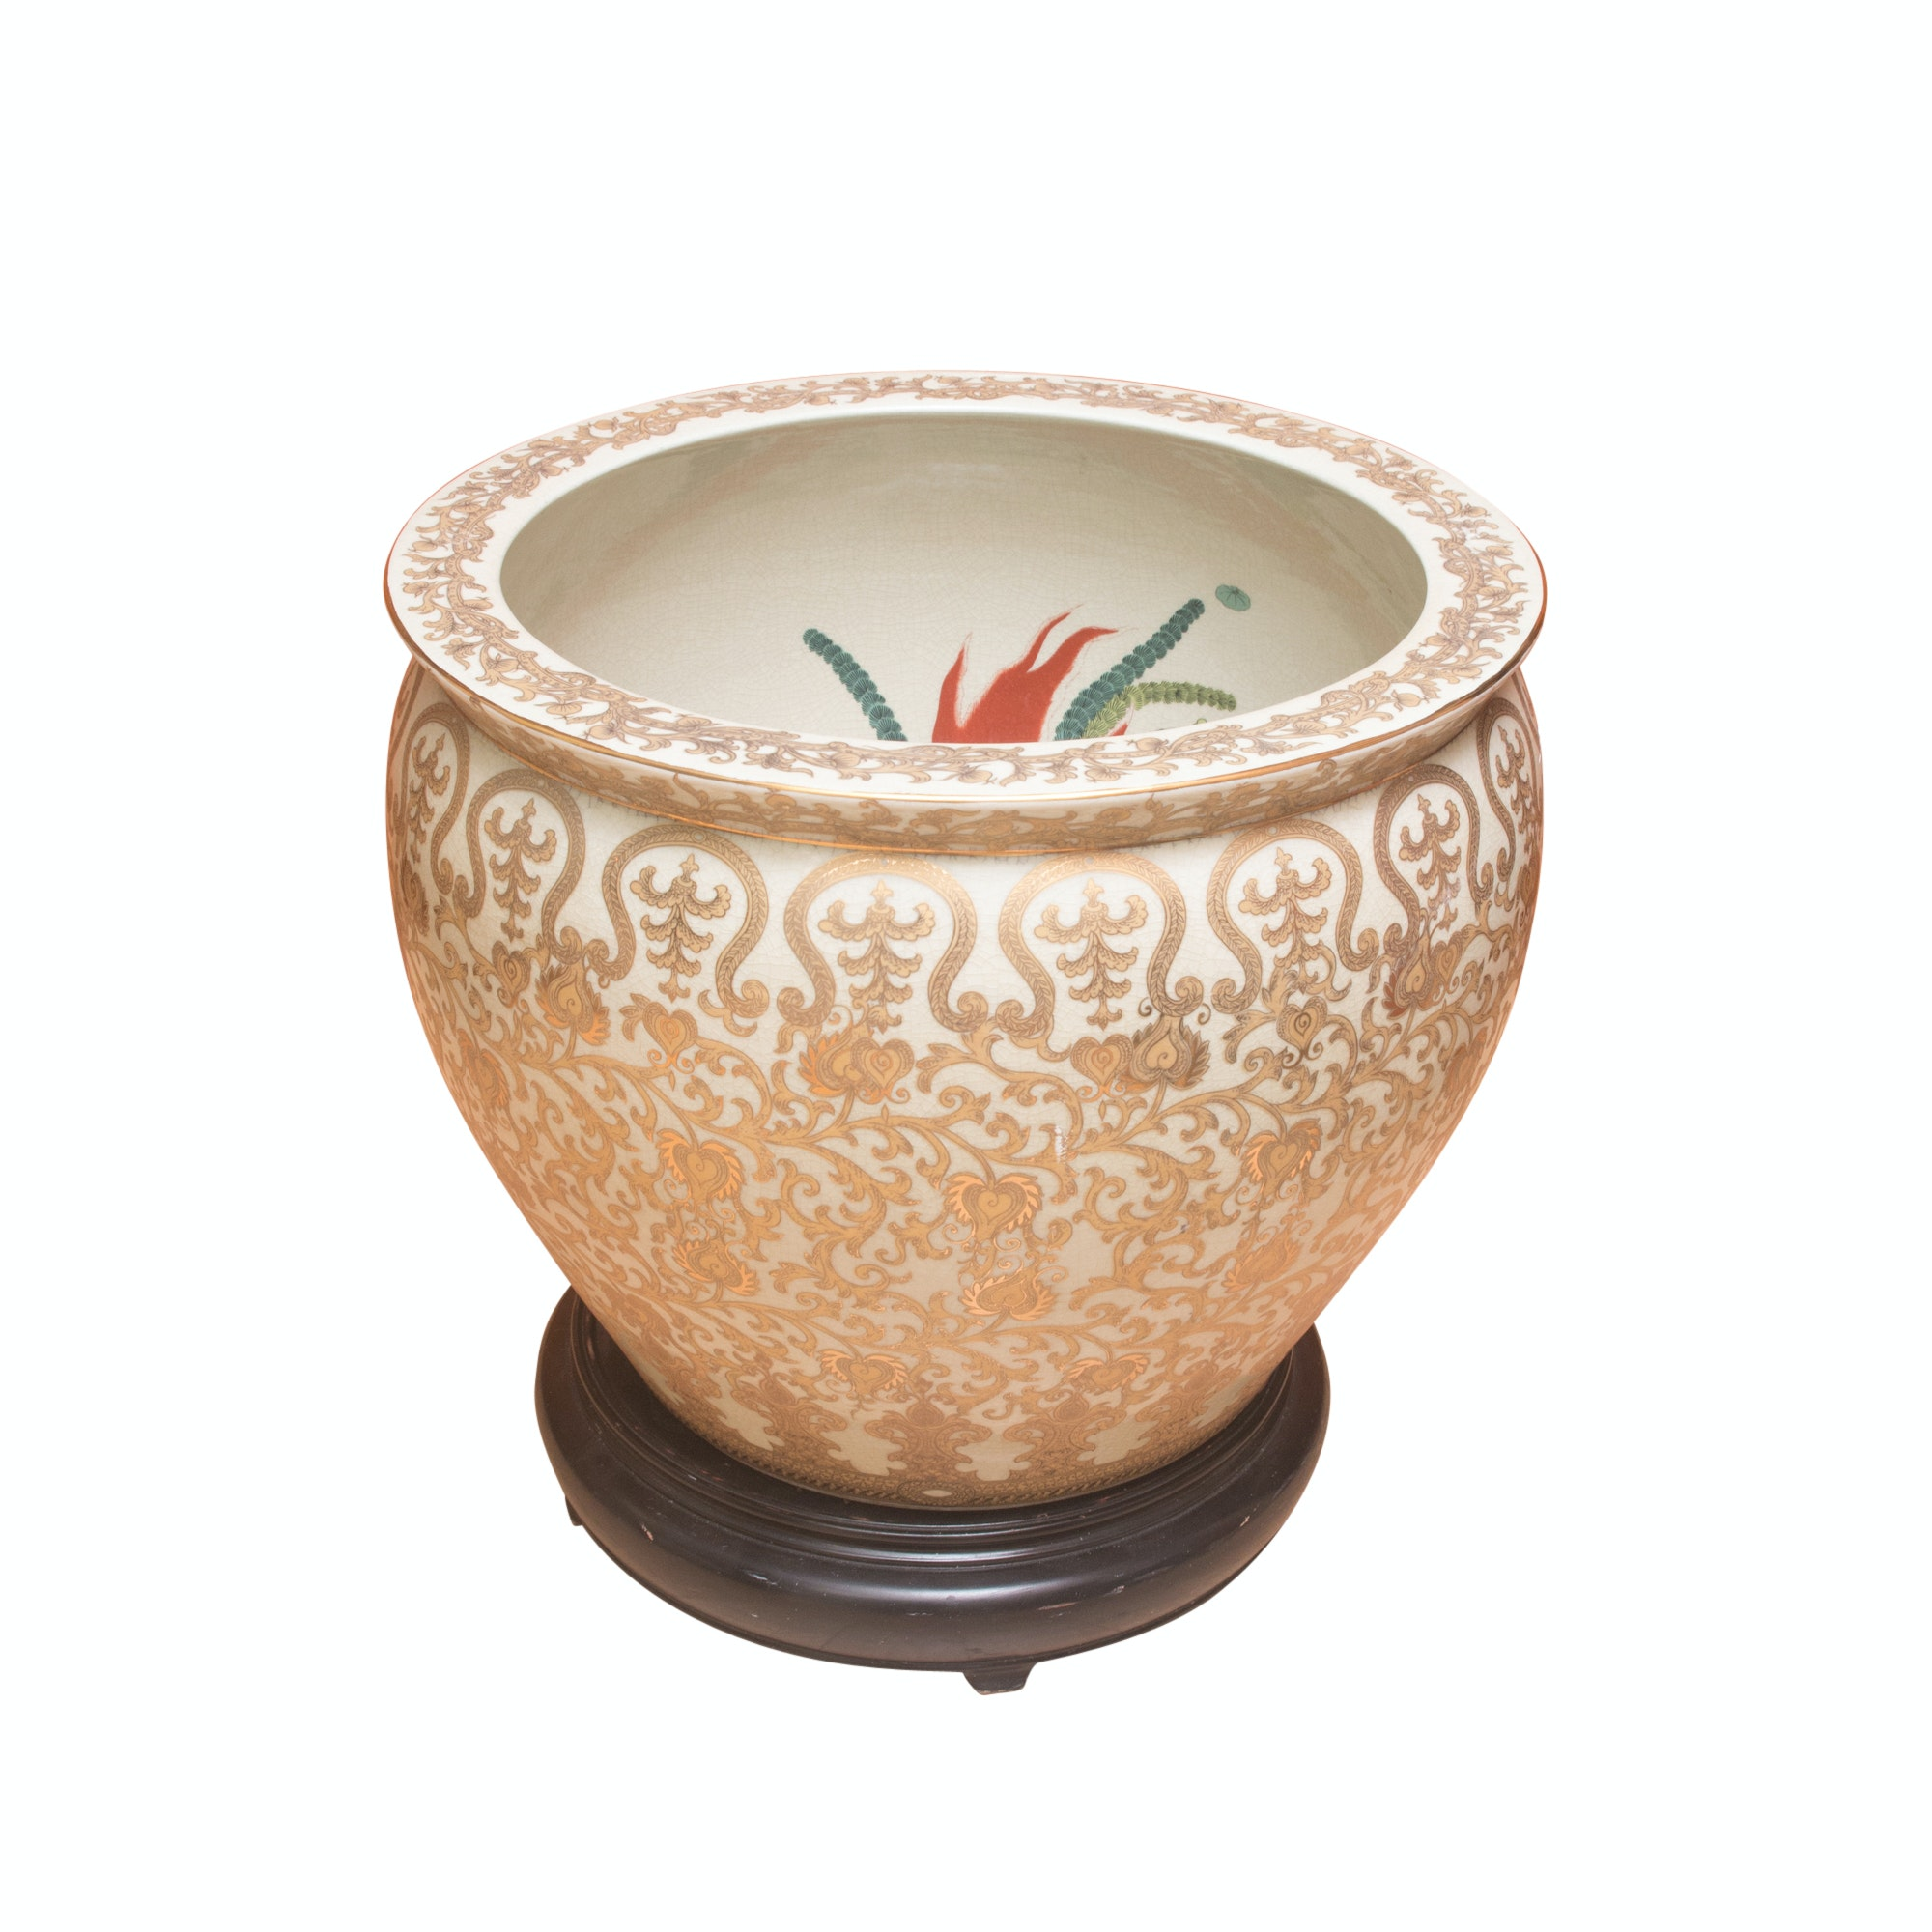 Chinese Gilded Scrollwork and Goldfish Ceramic Planter with Stand